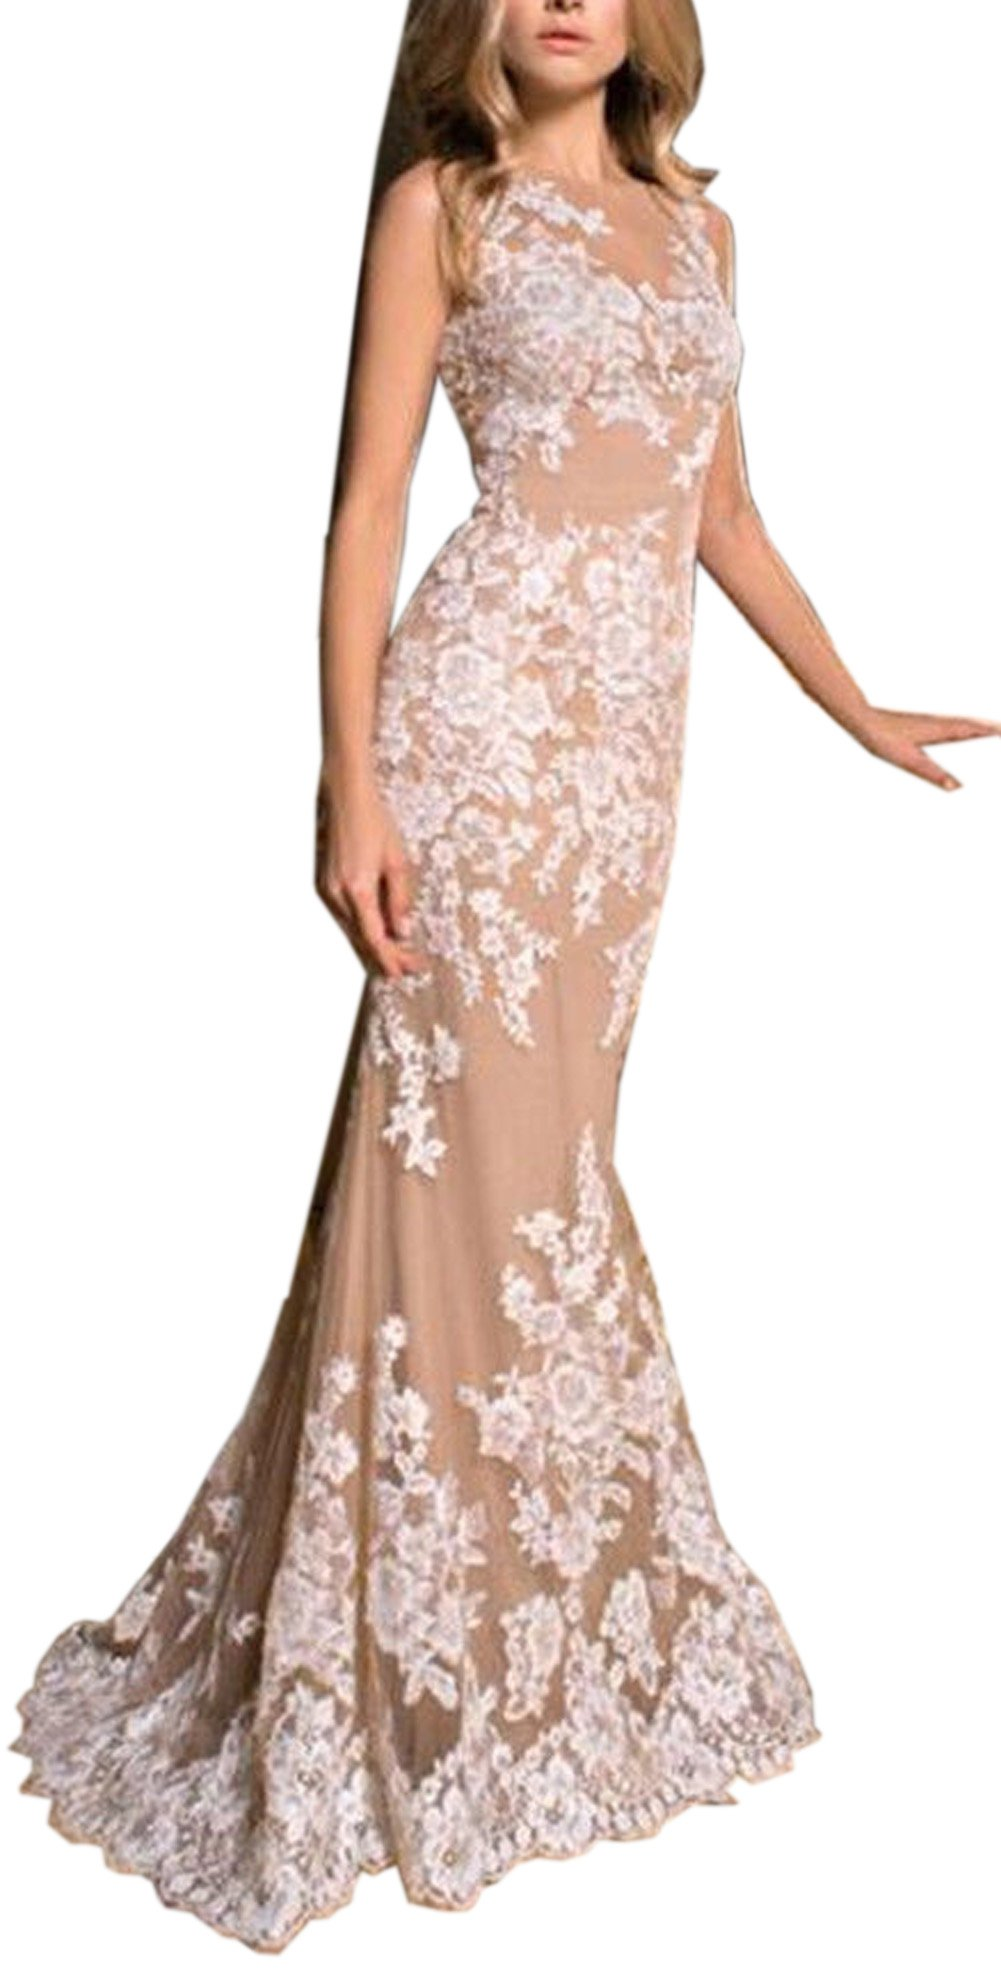 Sayadress Women's Applique Full Dresss Long Mermaid Wedding Dress with Detachable Train Champagne US6